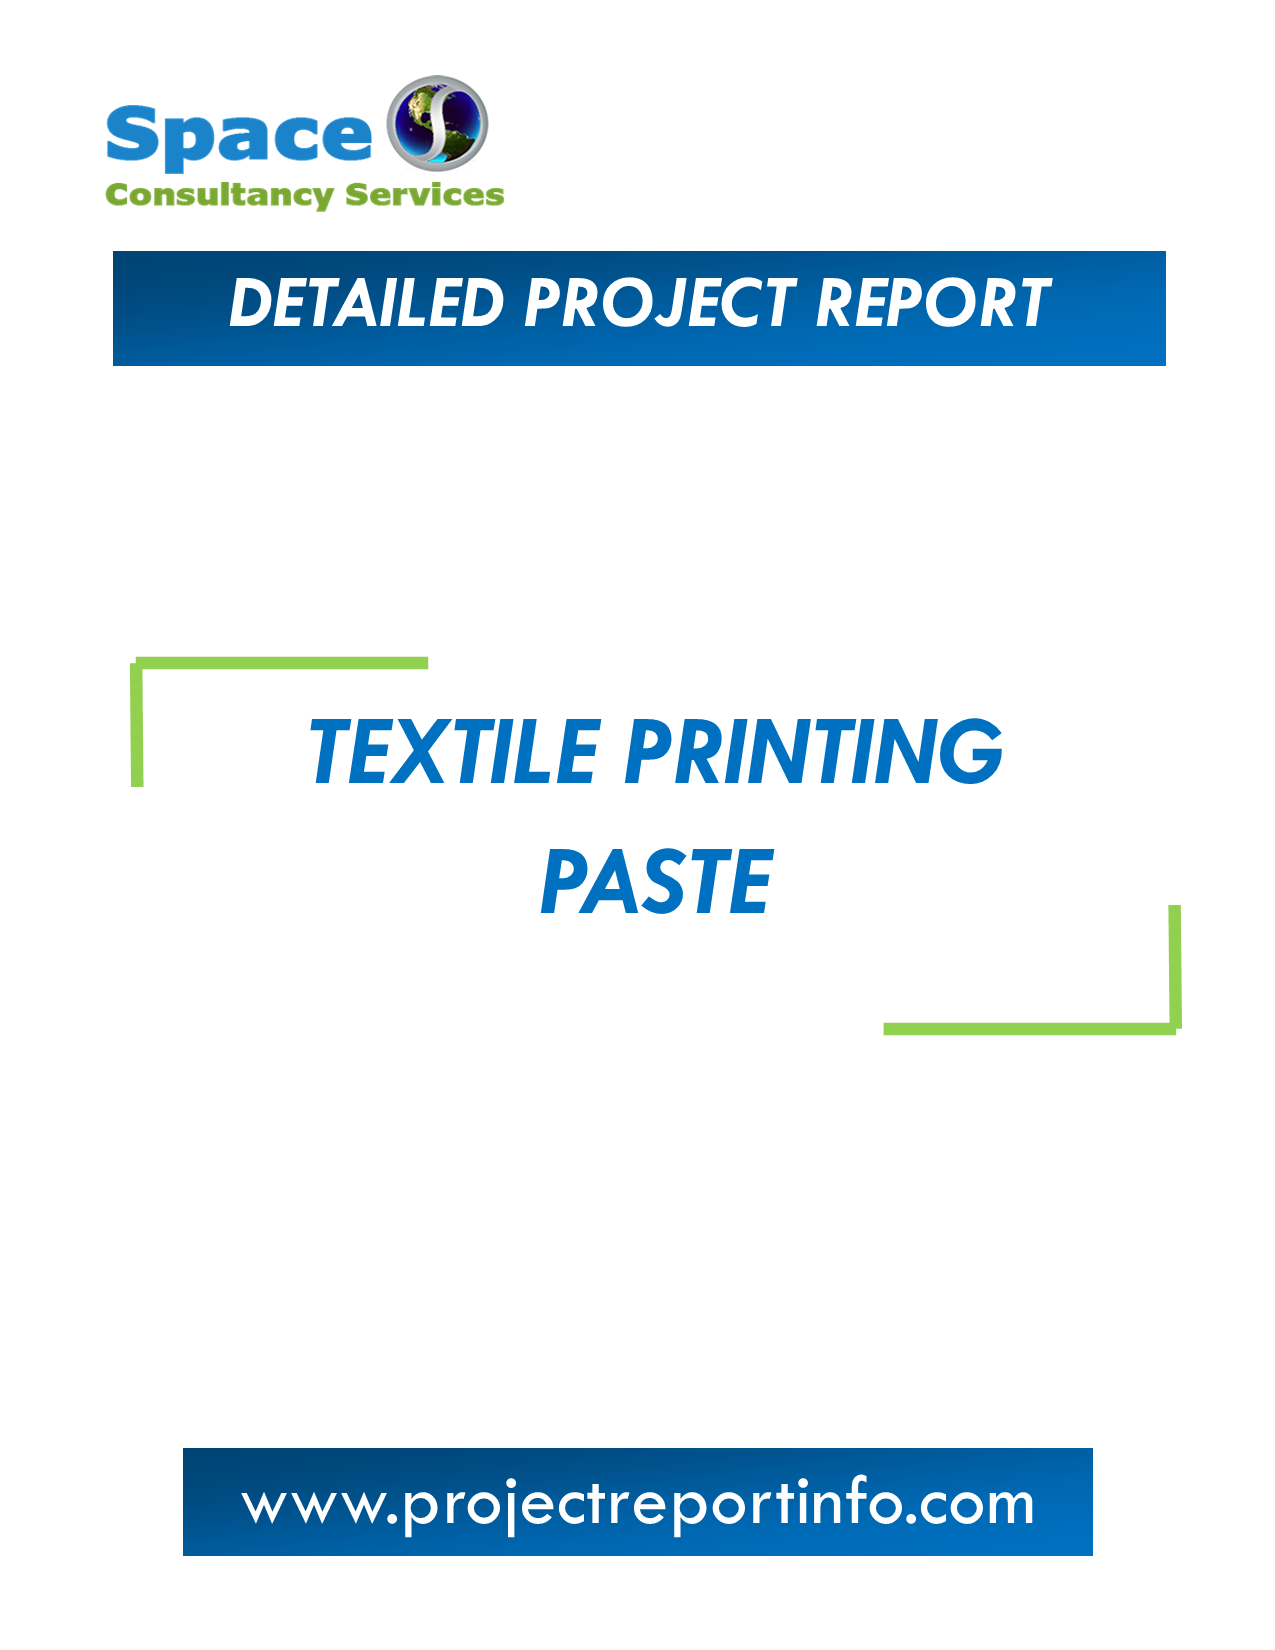 Project Report on Textile Printing Paste